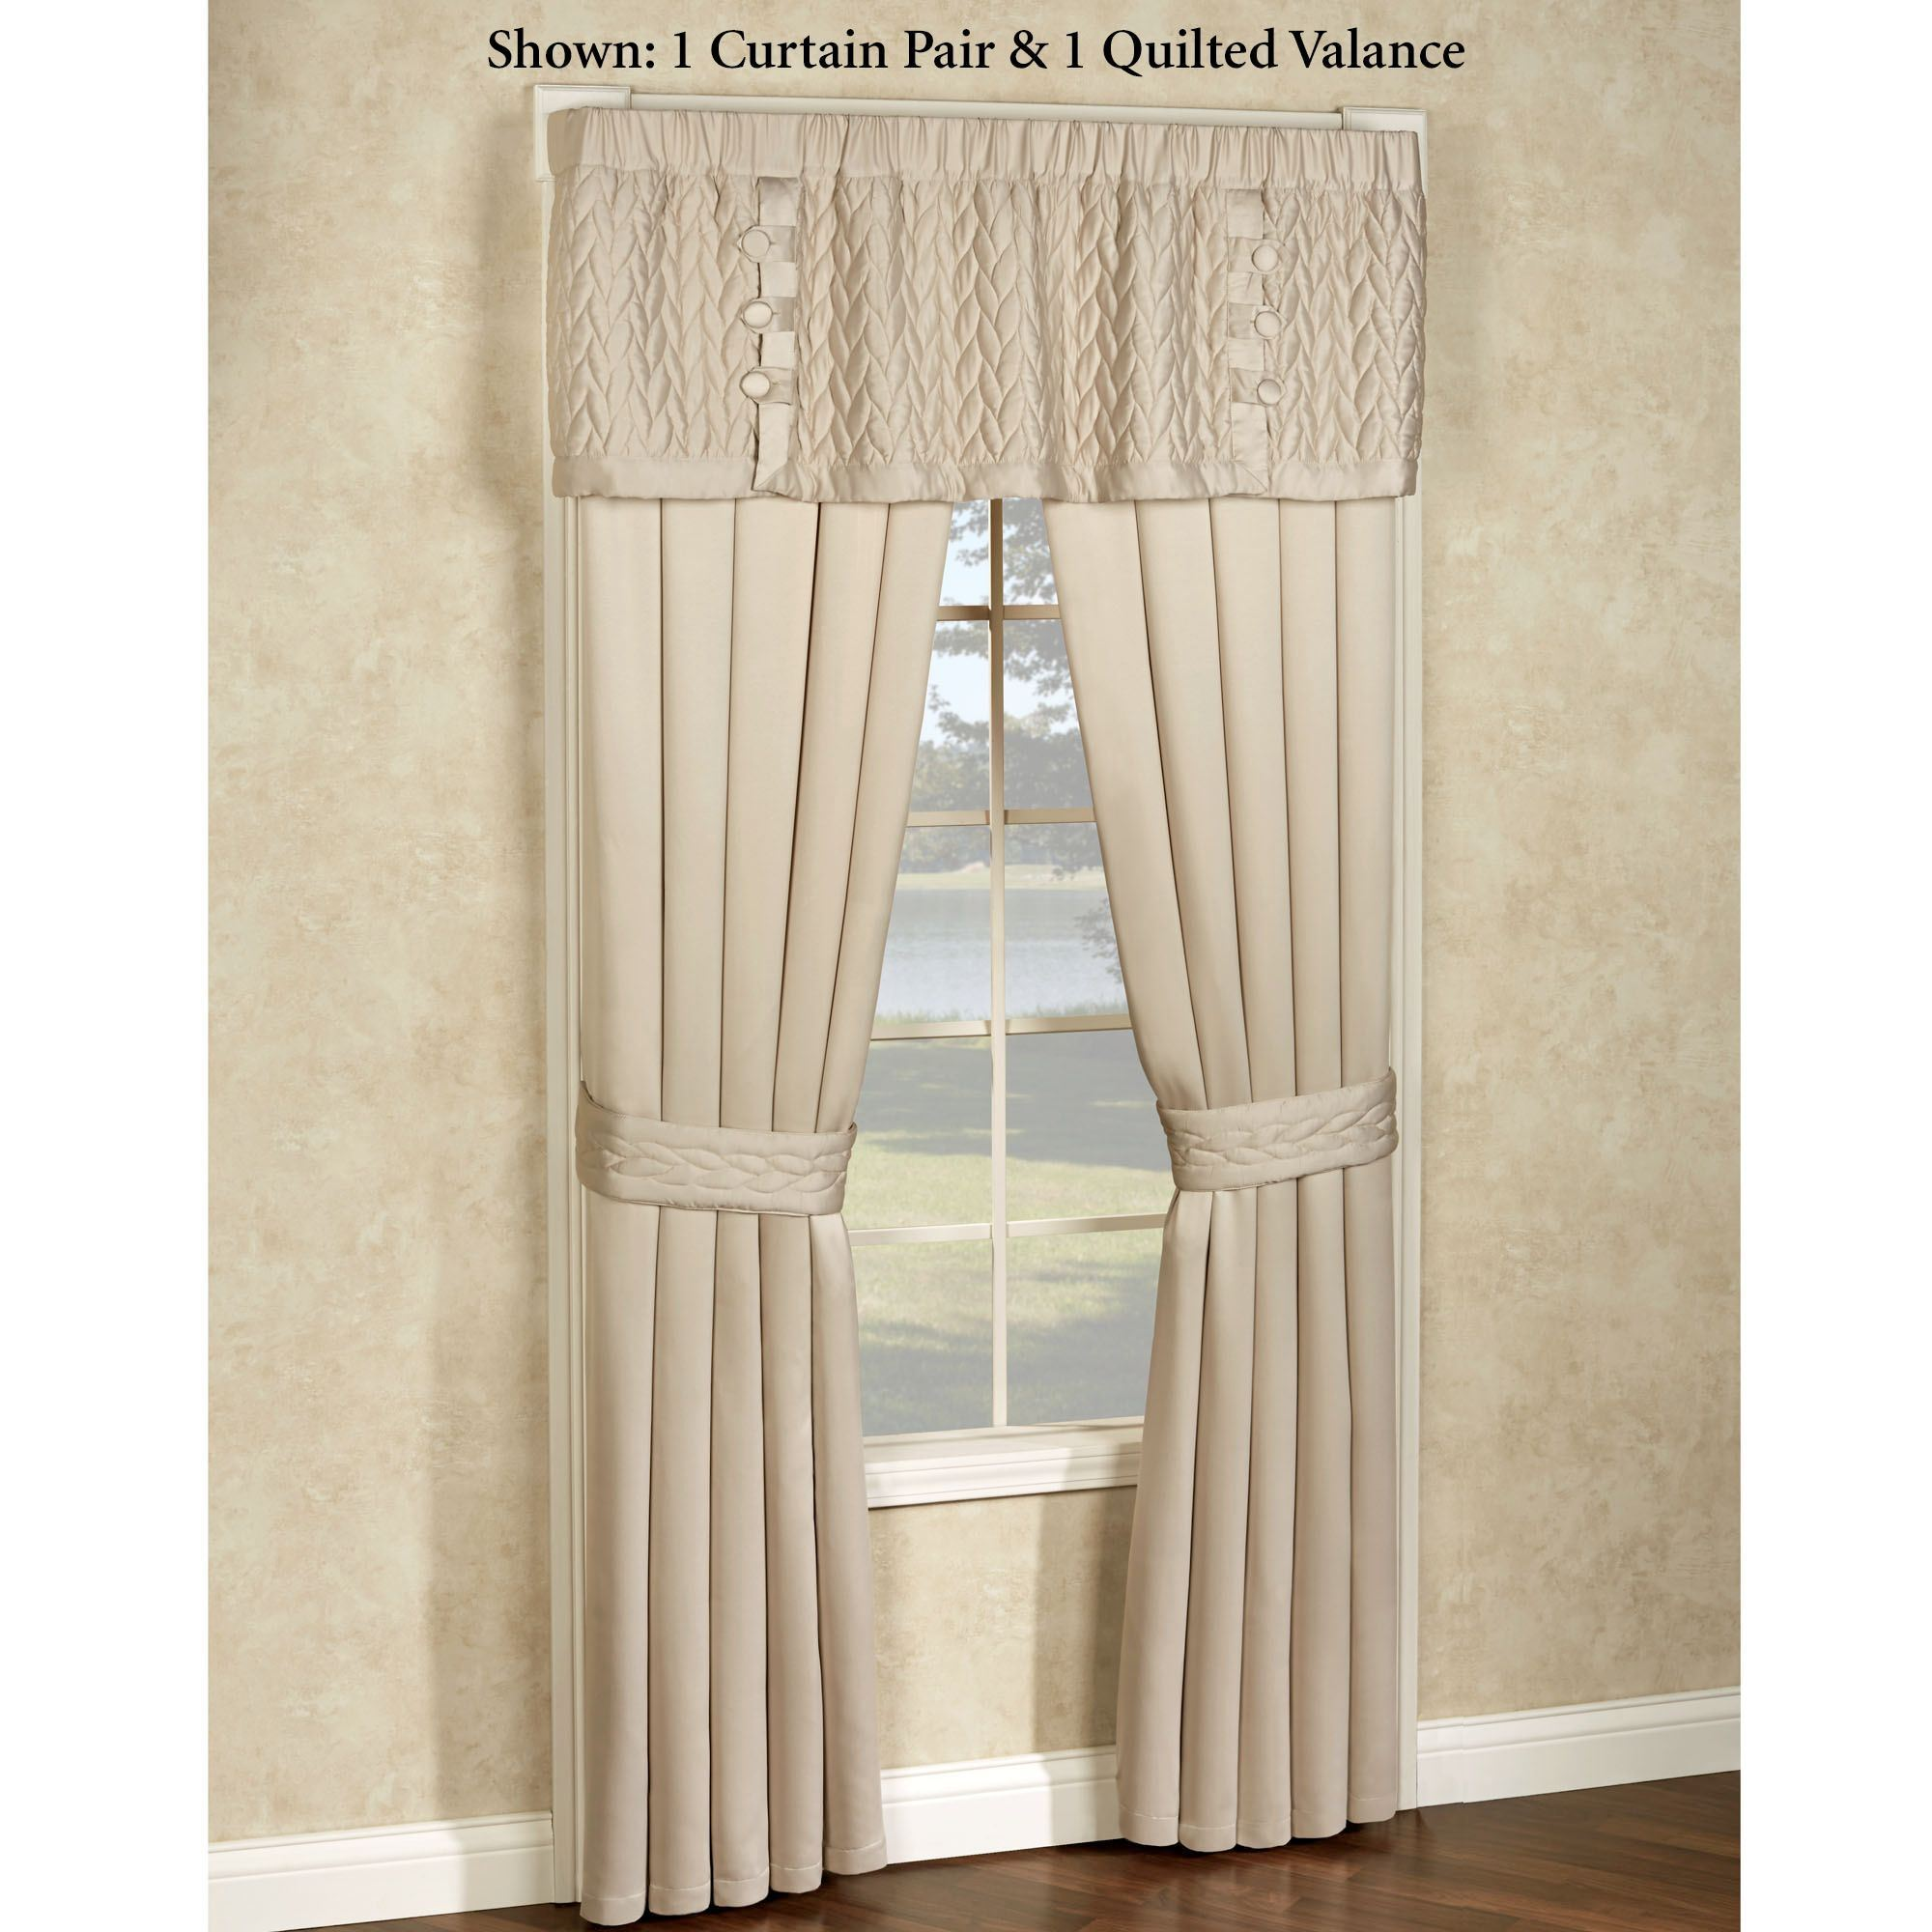 pin the neat mams crisp crown and valances mounted bay designs cornices window under valance very molding